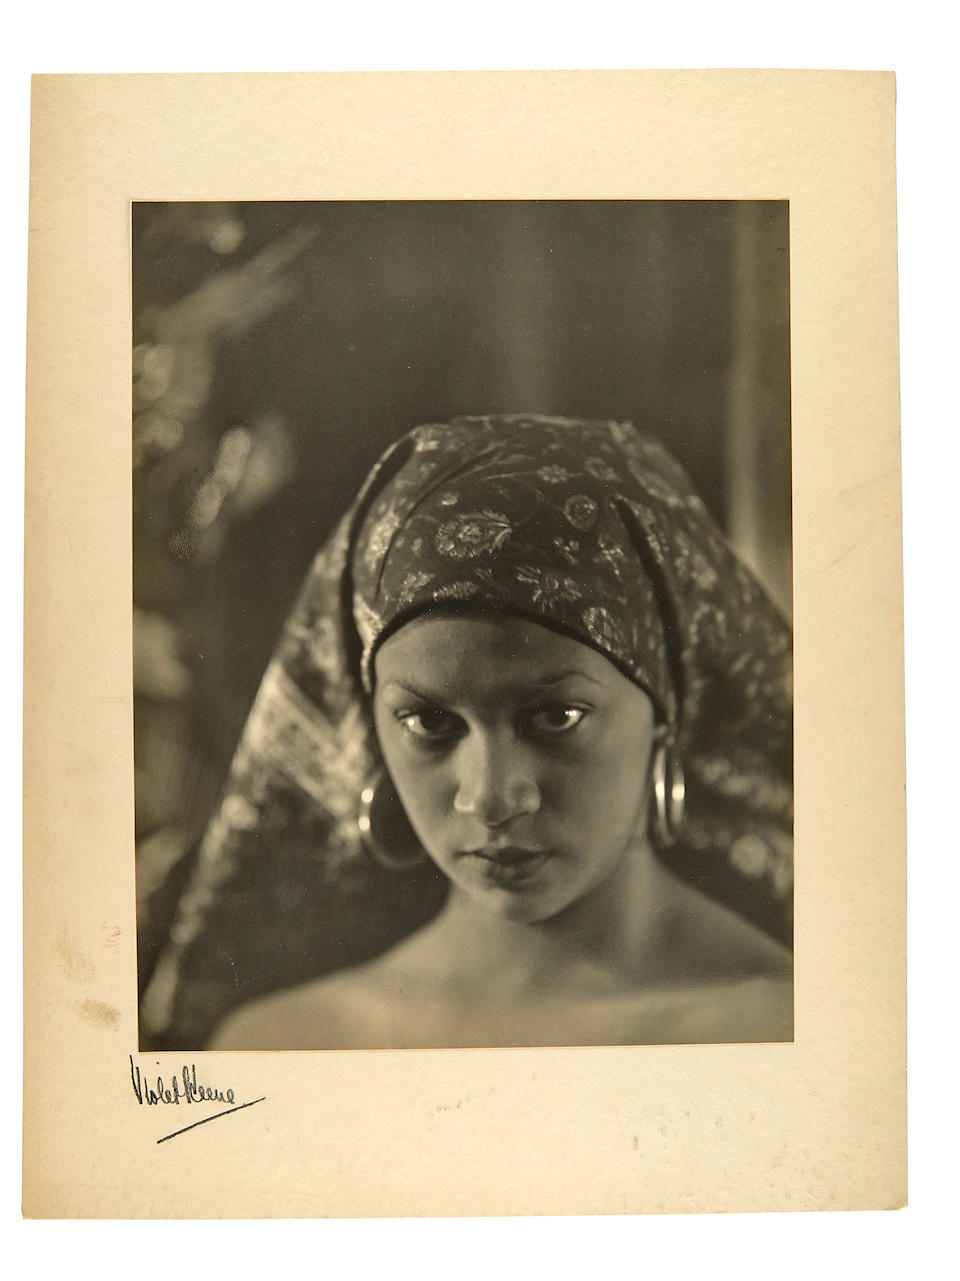 Keene, Minna. 1861-1943. Malay Woman S.Africa, in traditional Dress. Carbon print. 250 x 190mm. Mounted on card. [Cape Town c.1905, but this a later copy mid 1930s].